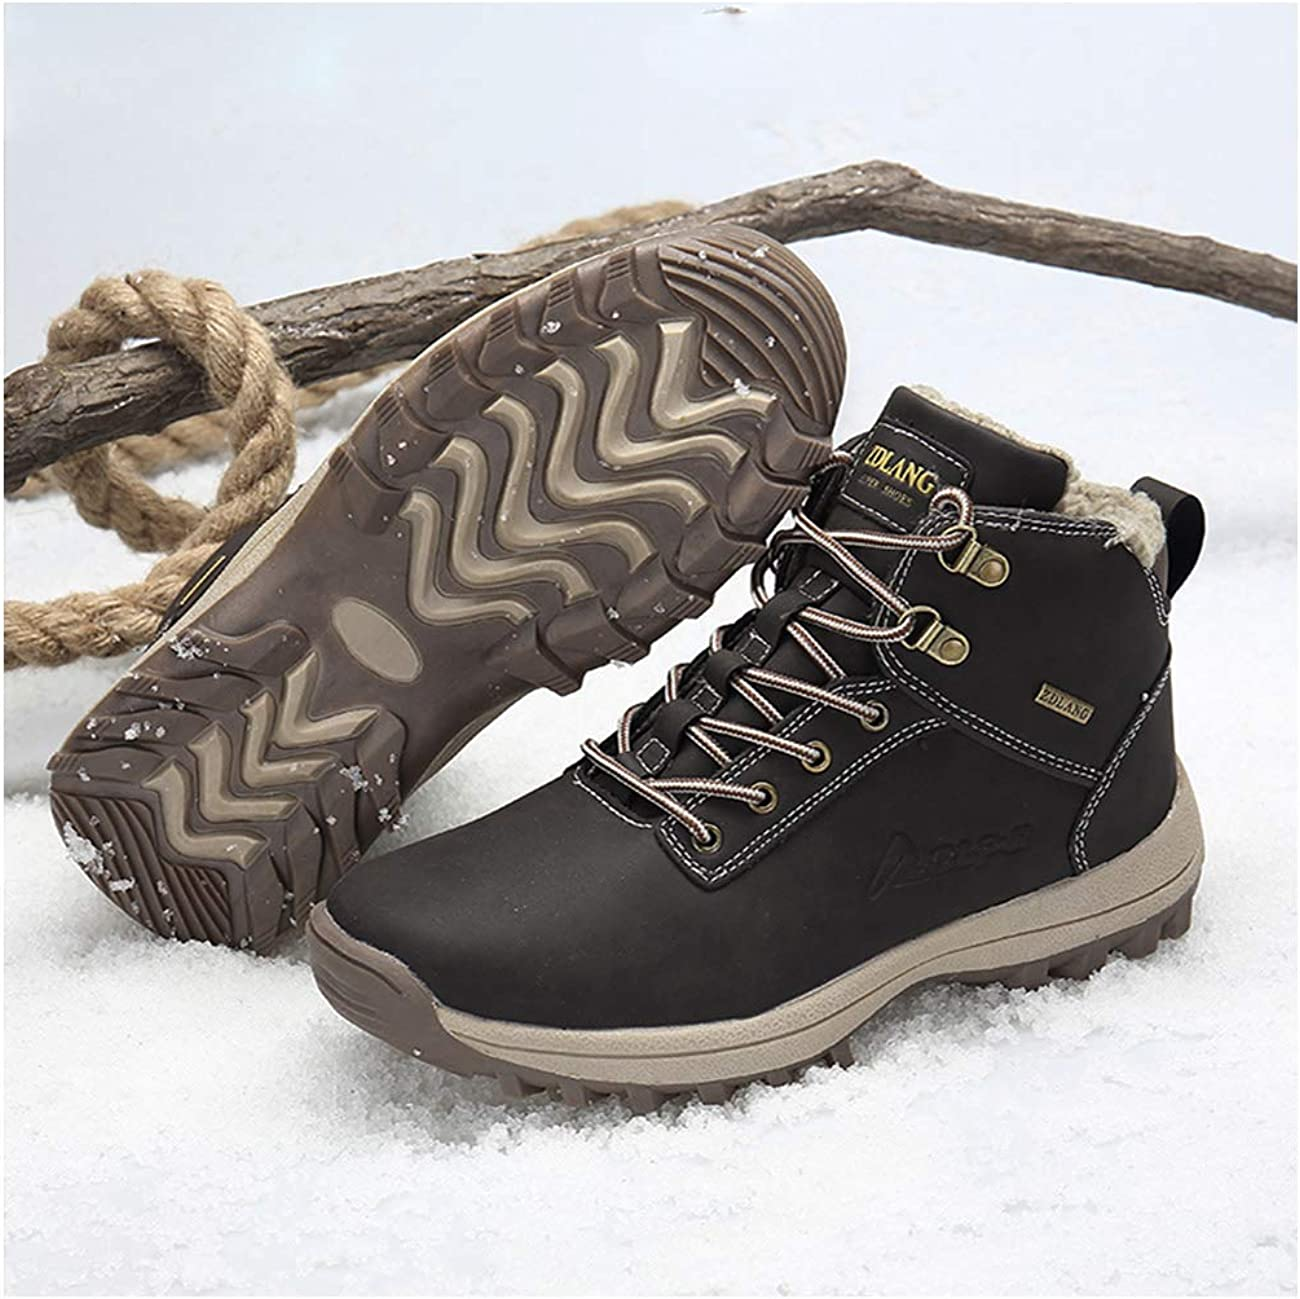 Rngtaqubeic Fur Winter Snow Boots Men Outdoor Shoes Rubber Ankle Boot Winter Shoes